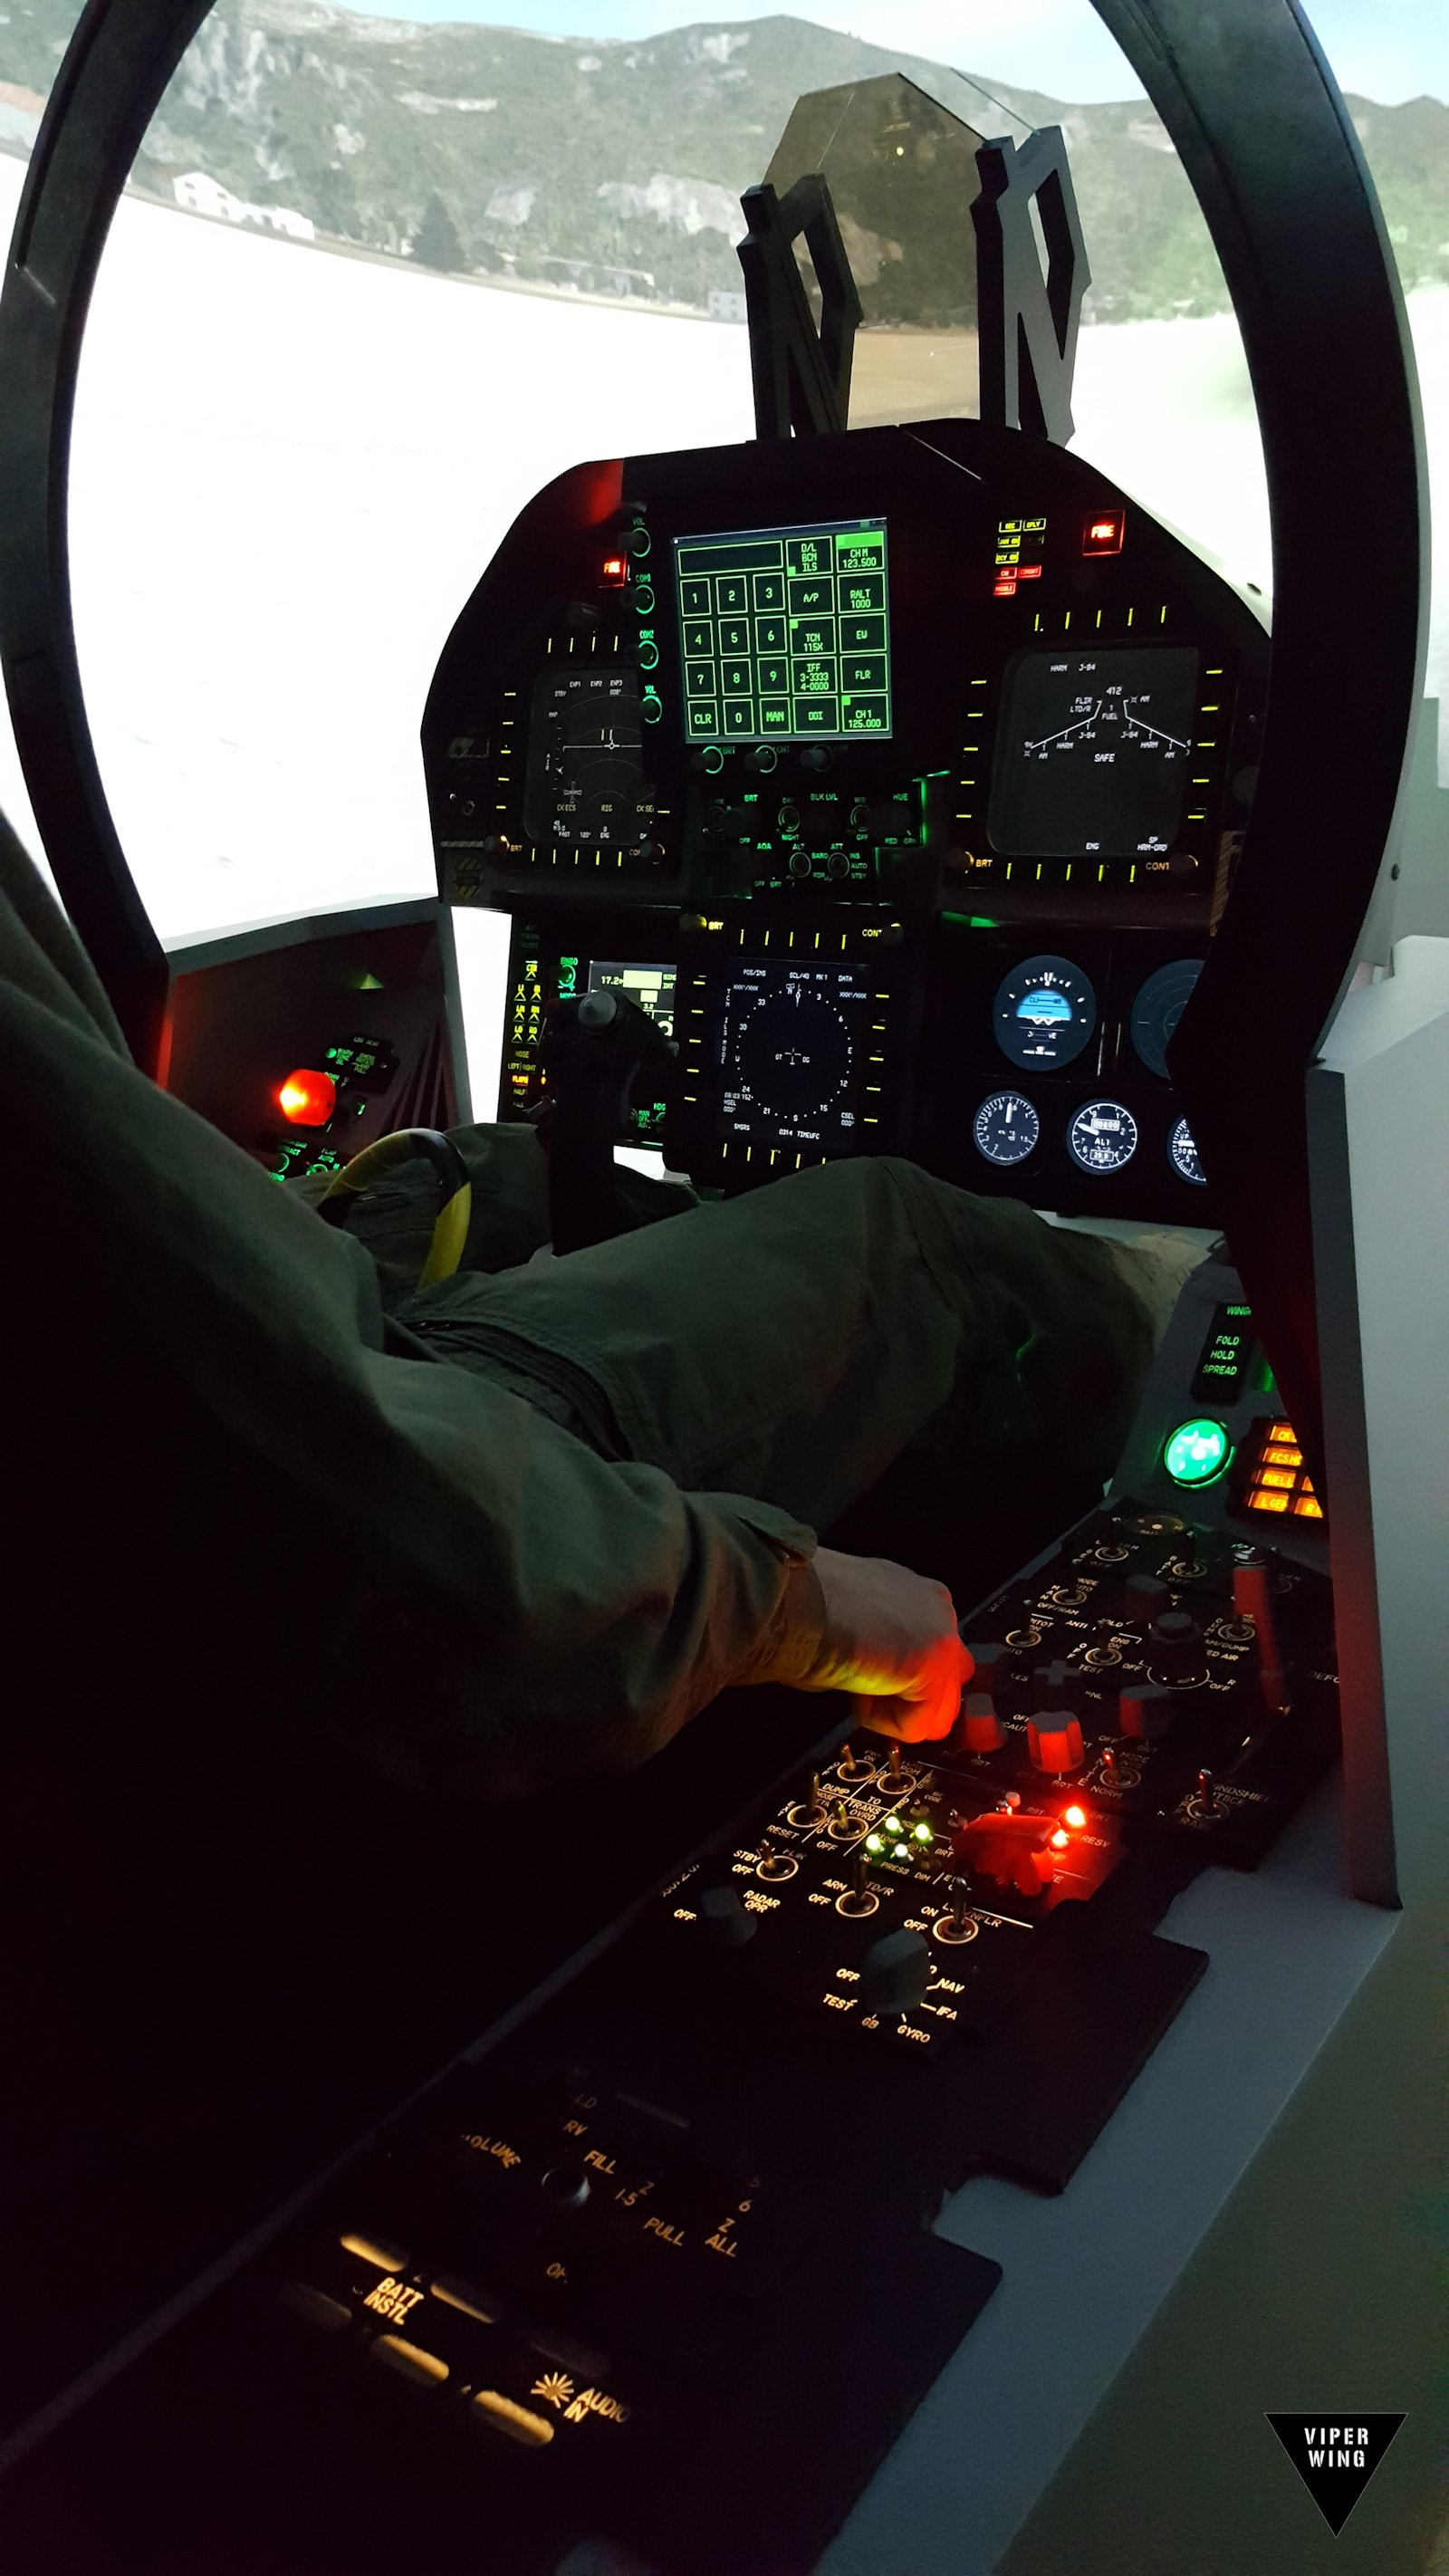 F-18, F/A-18 simulator fighter jet cockpit - all physical Hornet sim